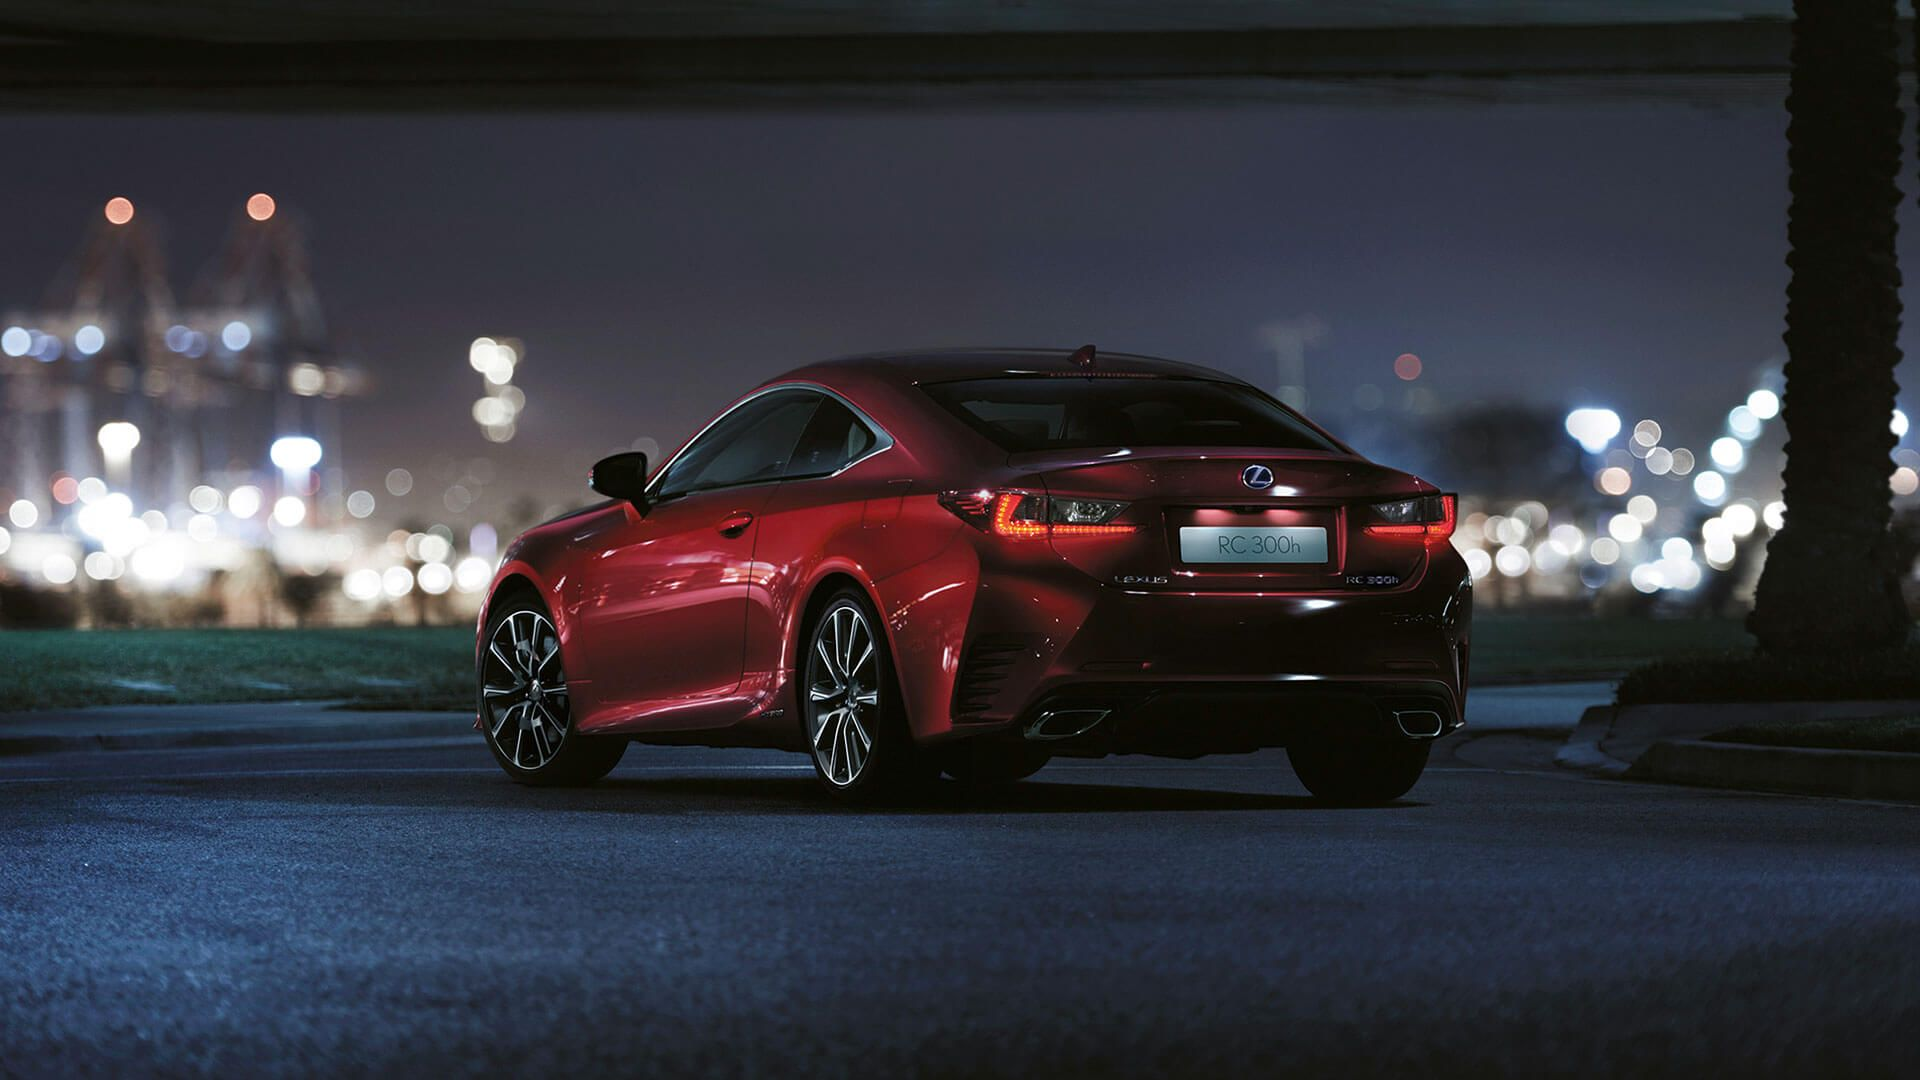 2017 lexus rc gallery 014 exterior Sports coupe, Coupe